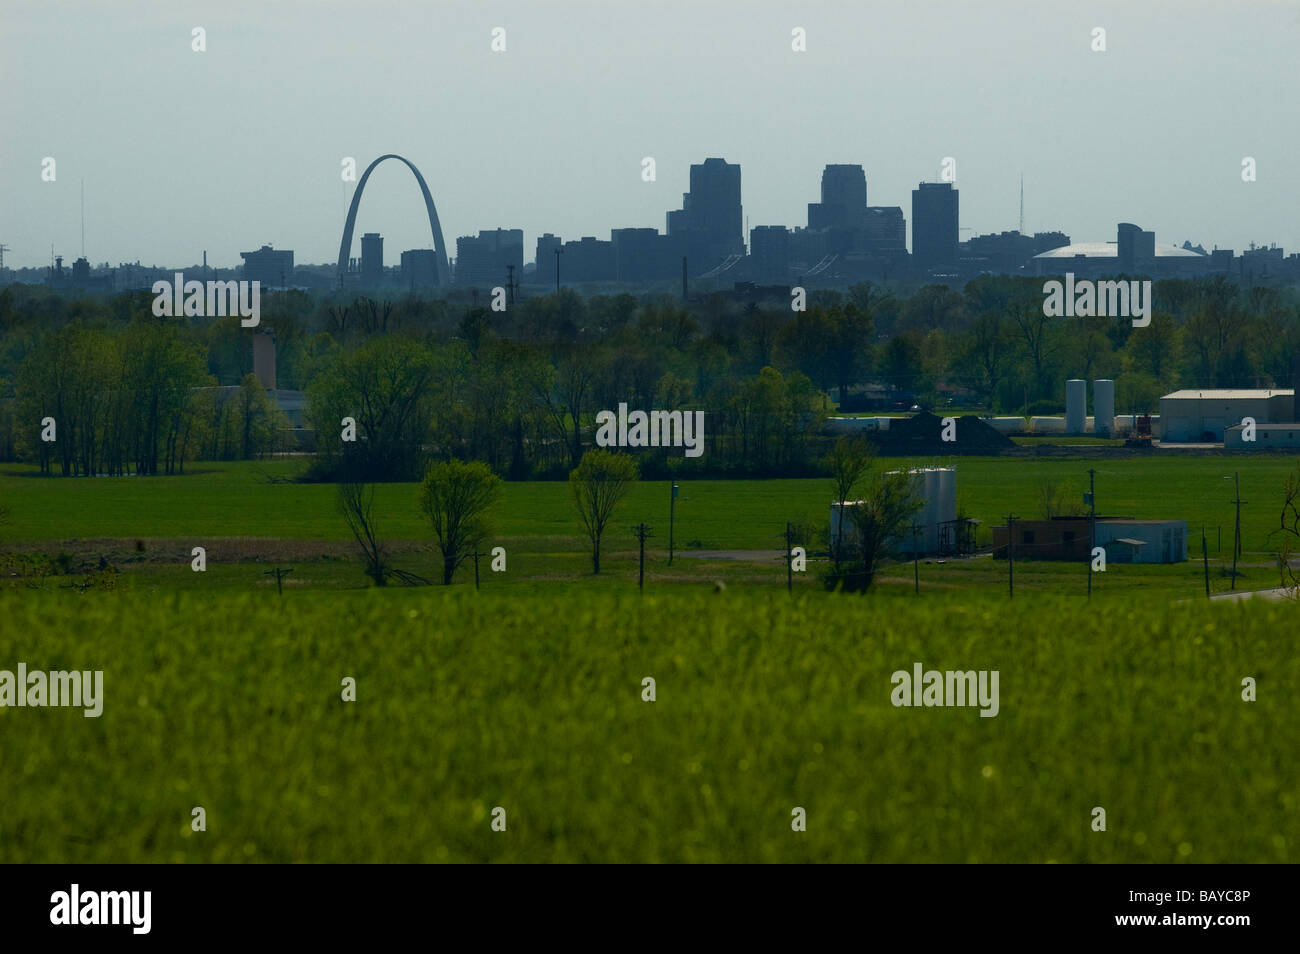 Syline of St Louis Missouri from Cahokia Mounds park Stock